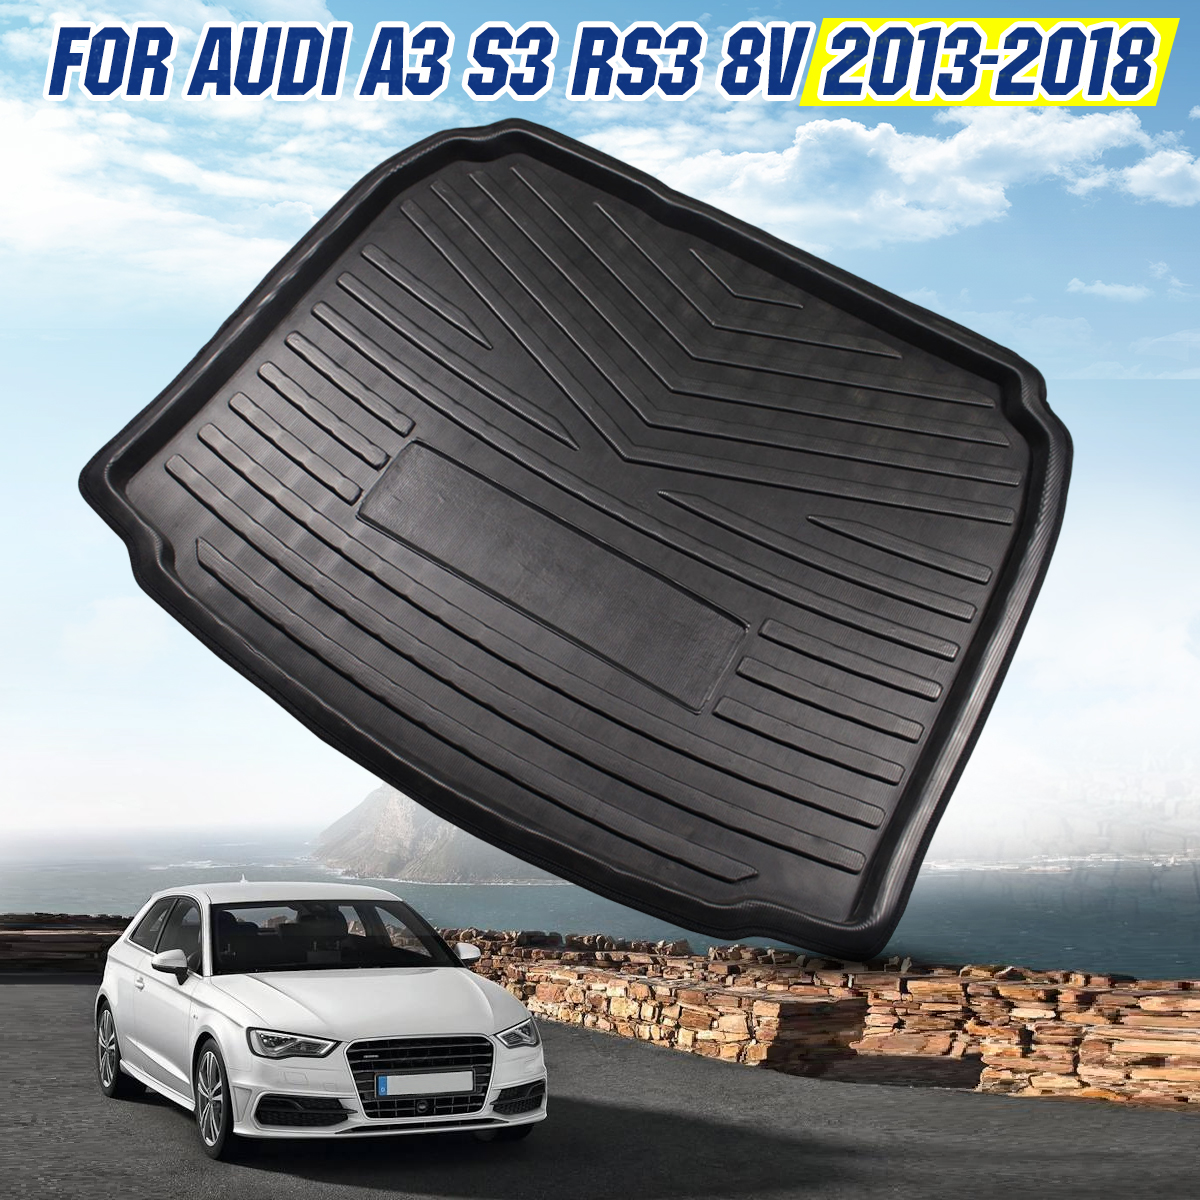 Car Interior Cargo Liner Boot Tray Rear Trunk Cover Matt Mat Floor Carpet Kick Pad For Audi A3 S3 RS3 8v 2013 2014 2015 - 2018